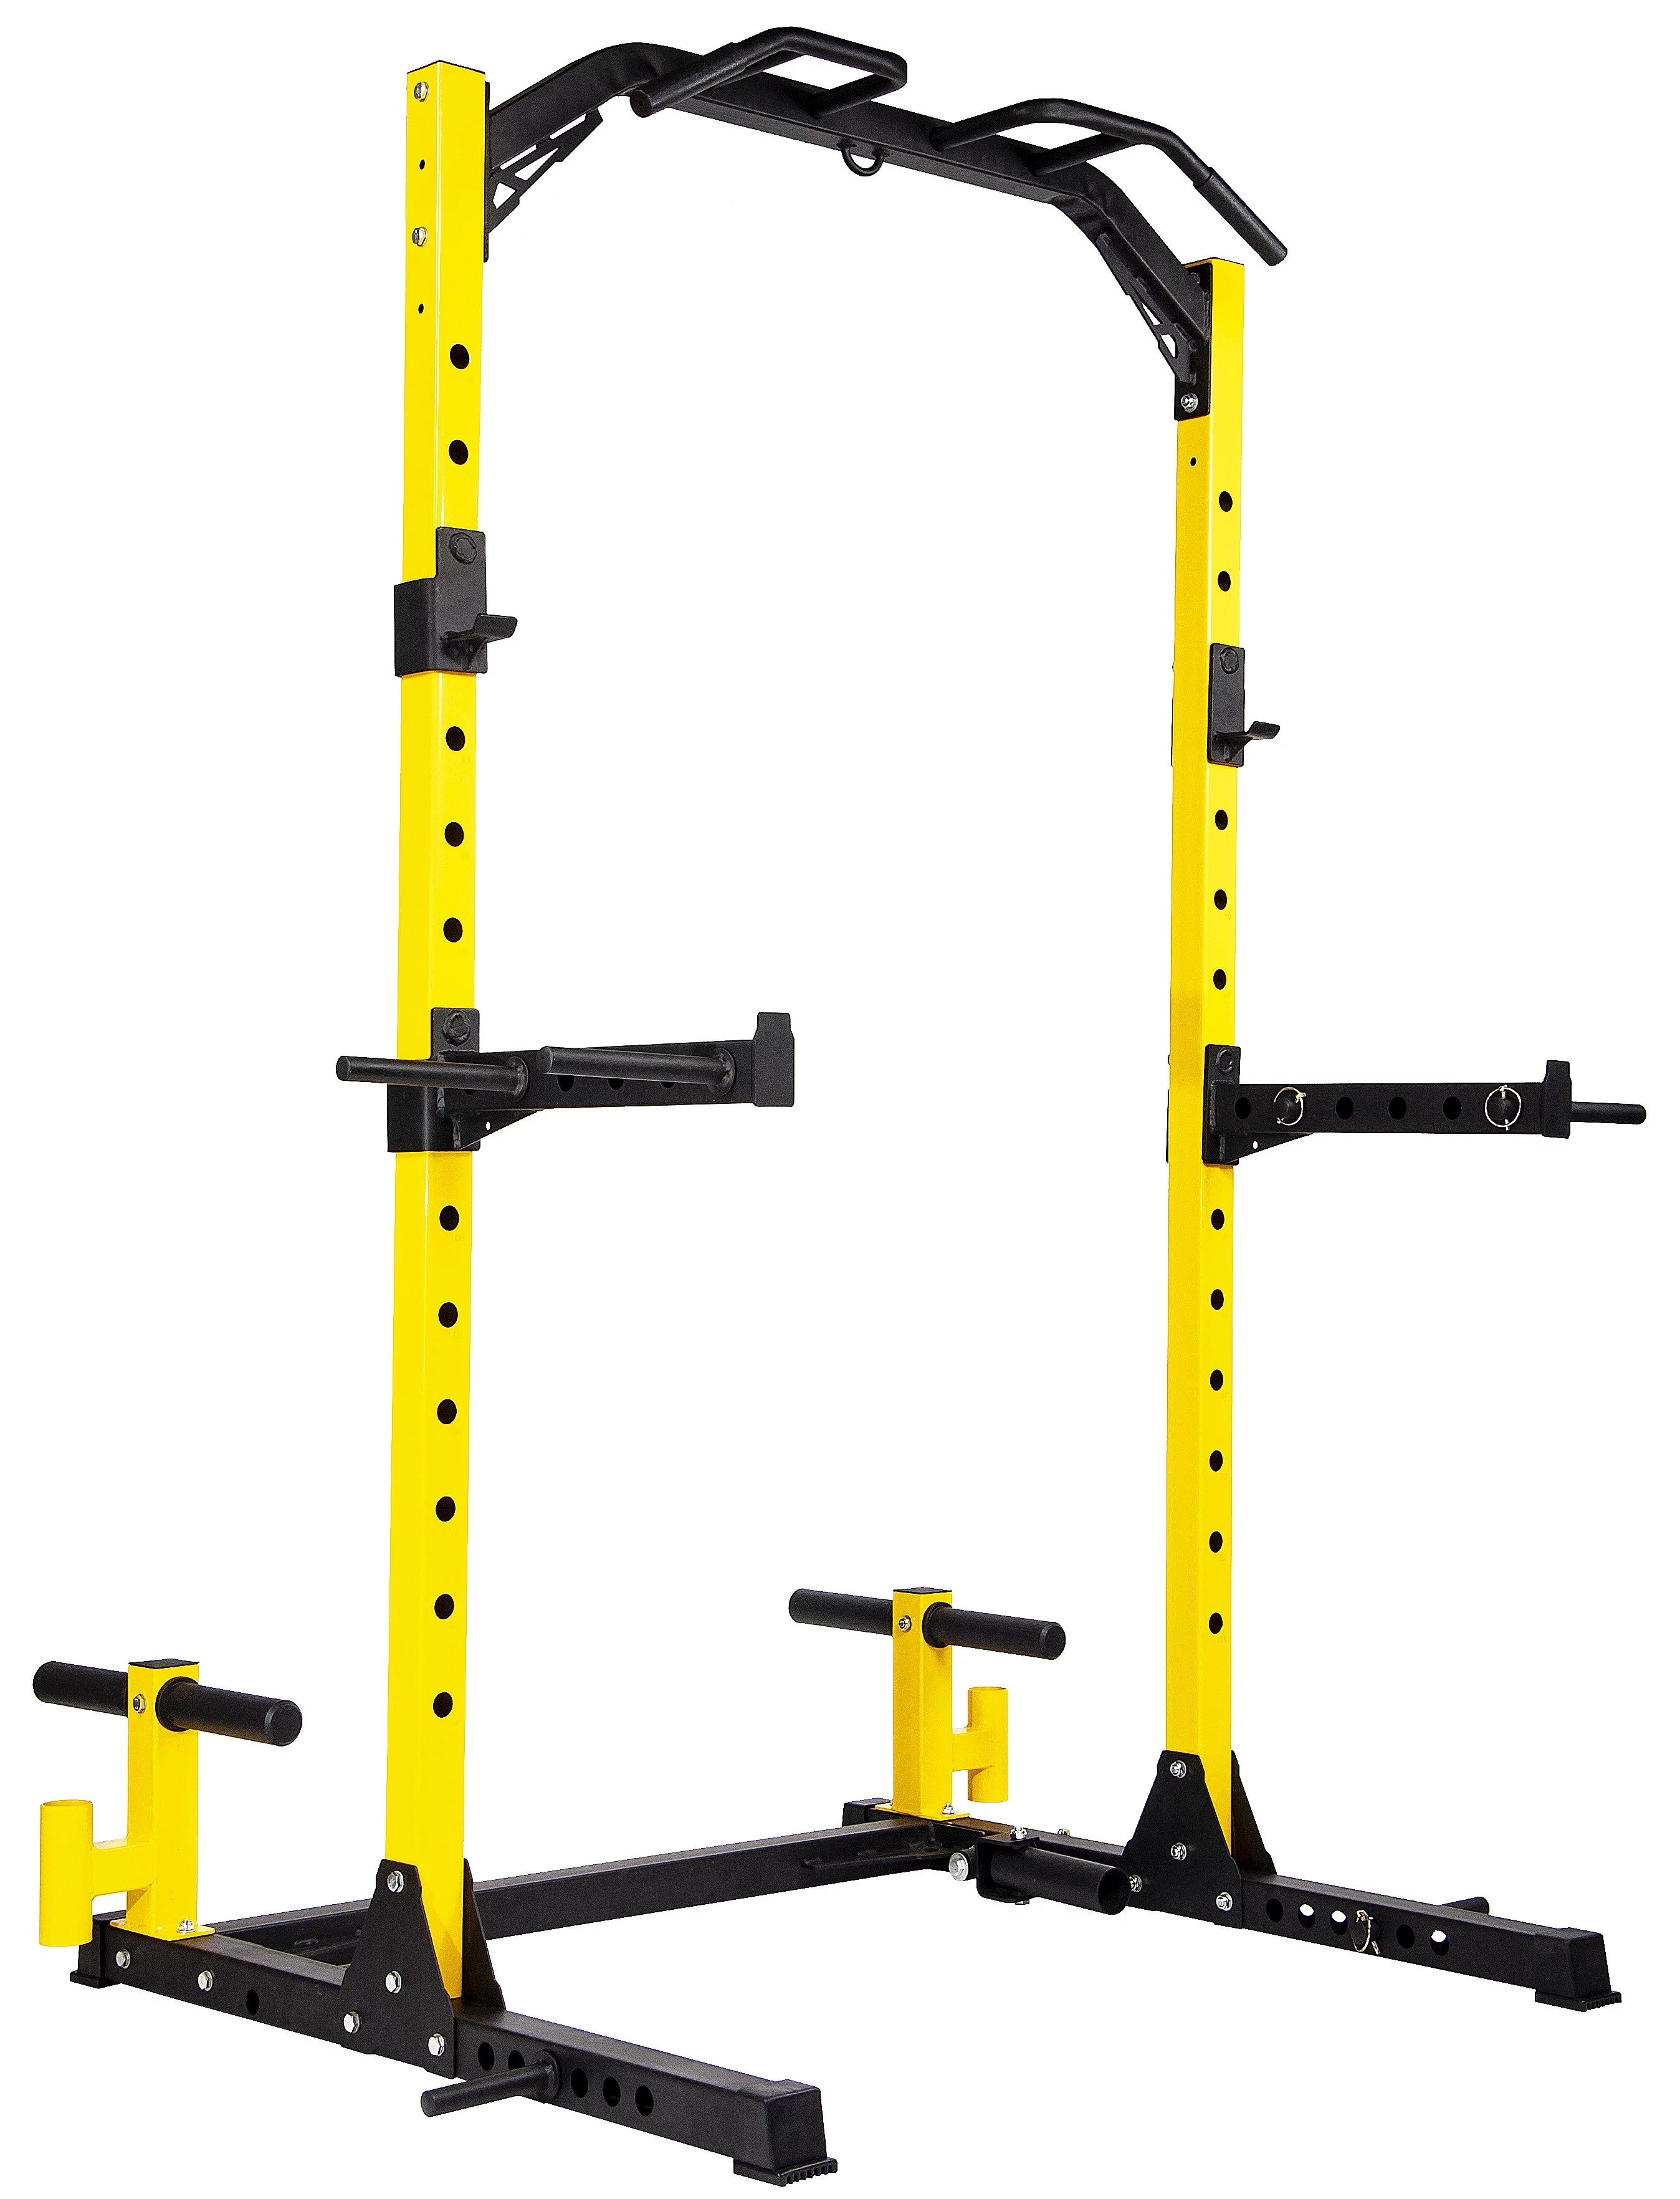 everyday essentials multi function adjustable power rack exercise squat stand with dip bars weight plate holders j hooks and other accessories